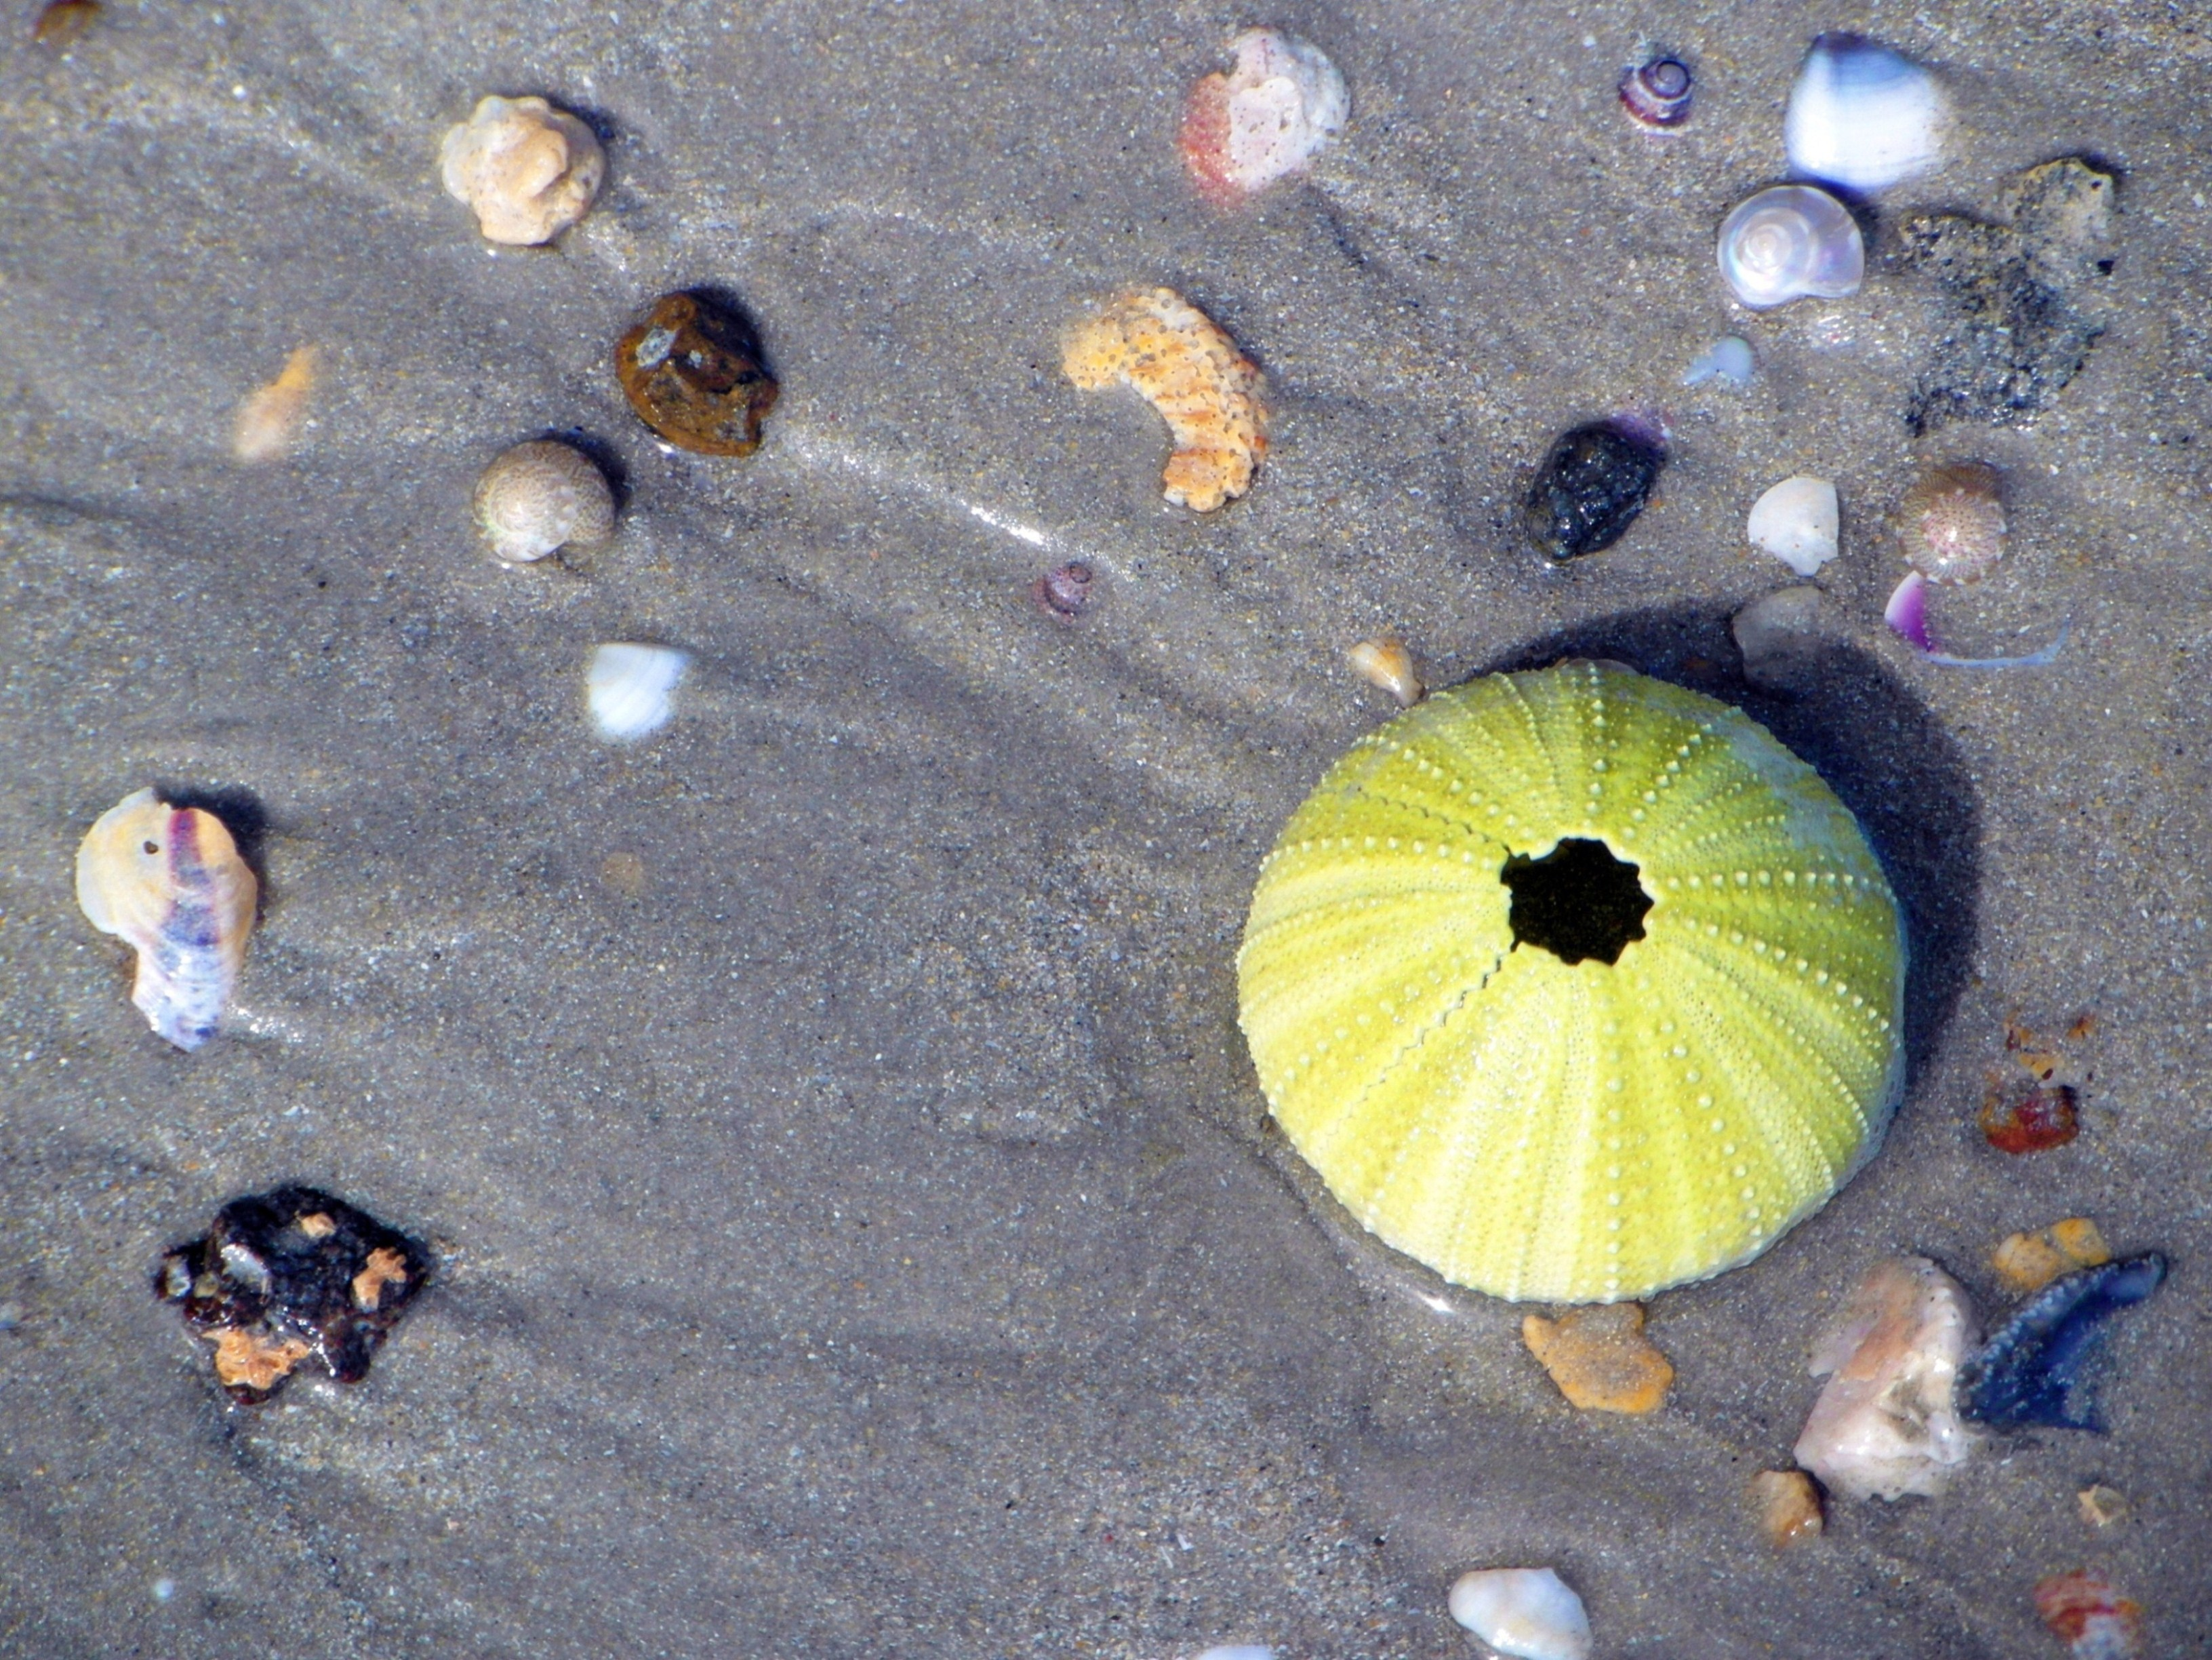 Sea shells with an urchin photo